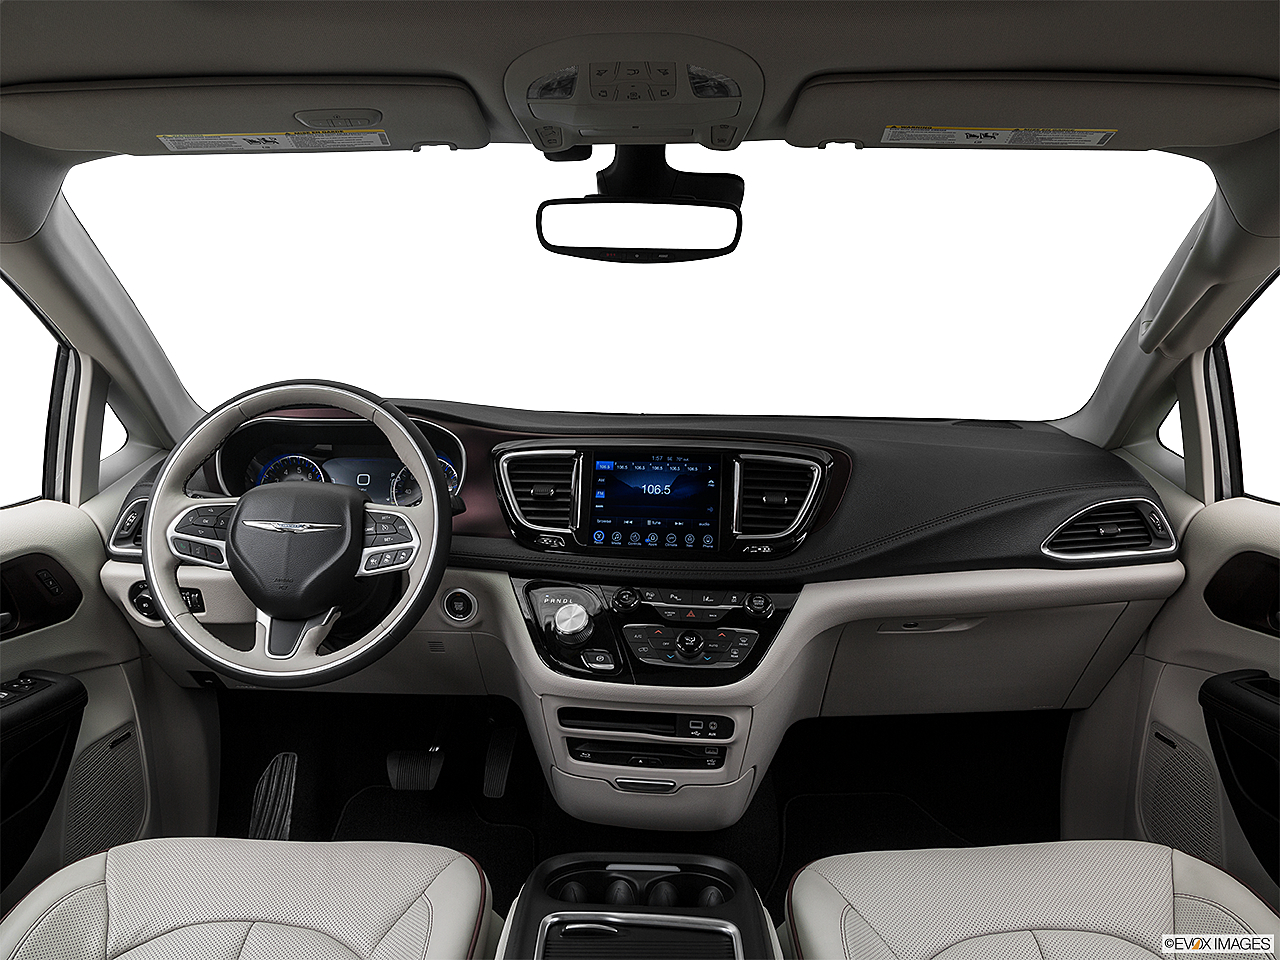 2018 Chrysler Pacifica Limited, centered wide dash shot